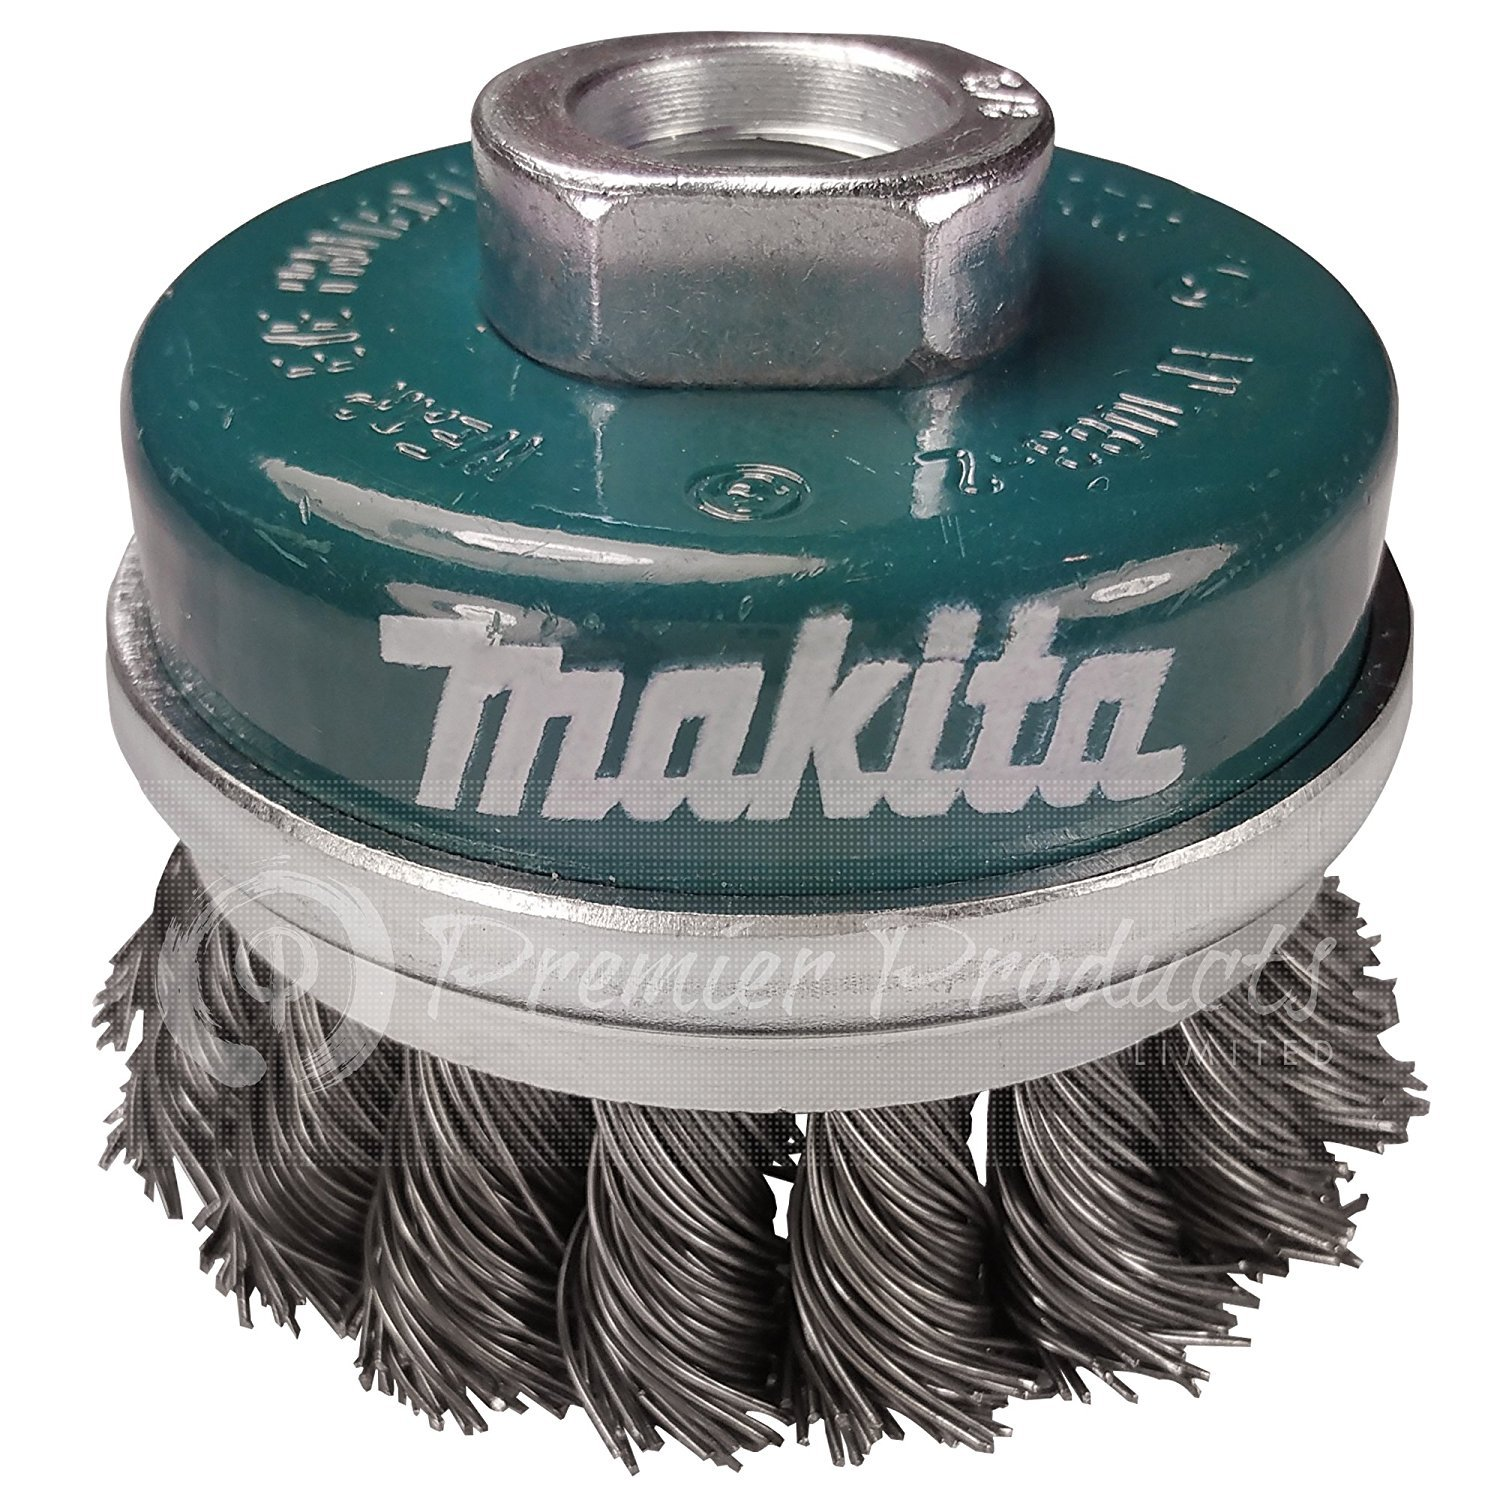 Makita 1 Piece - 2.5 Inch Banded Knotted Wire Cup Brush For Grinders - Ultra-Duty Conditioning For Metal - 2.5'' x 5/8-Inch | 11 UNC by Makita